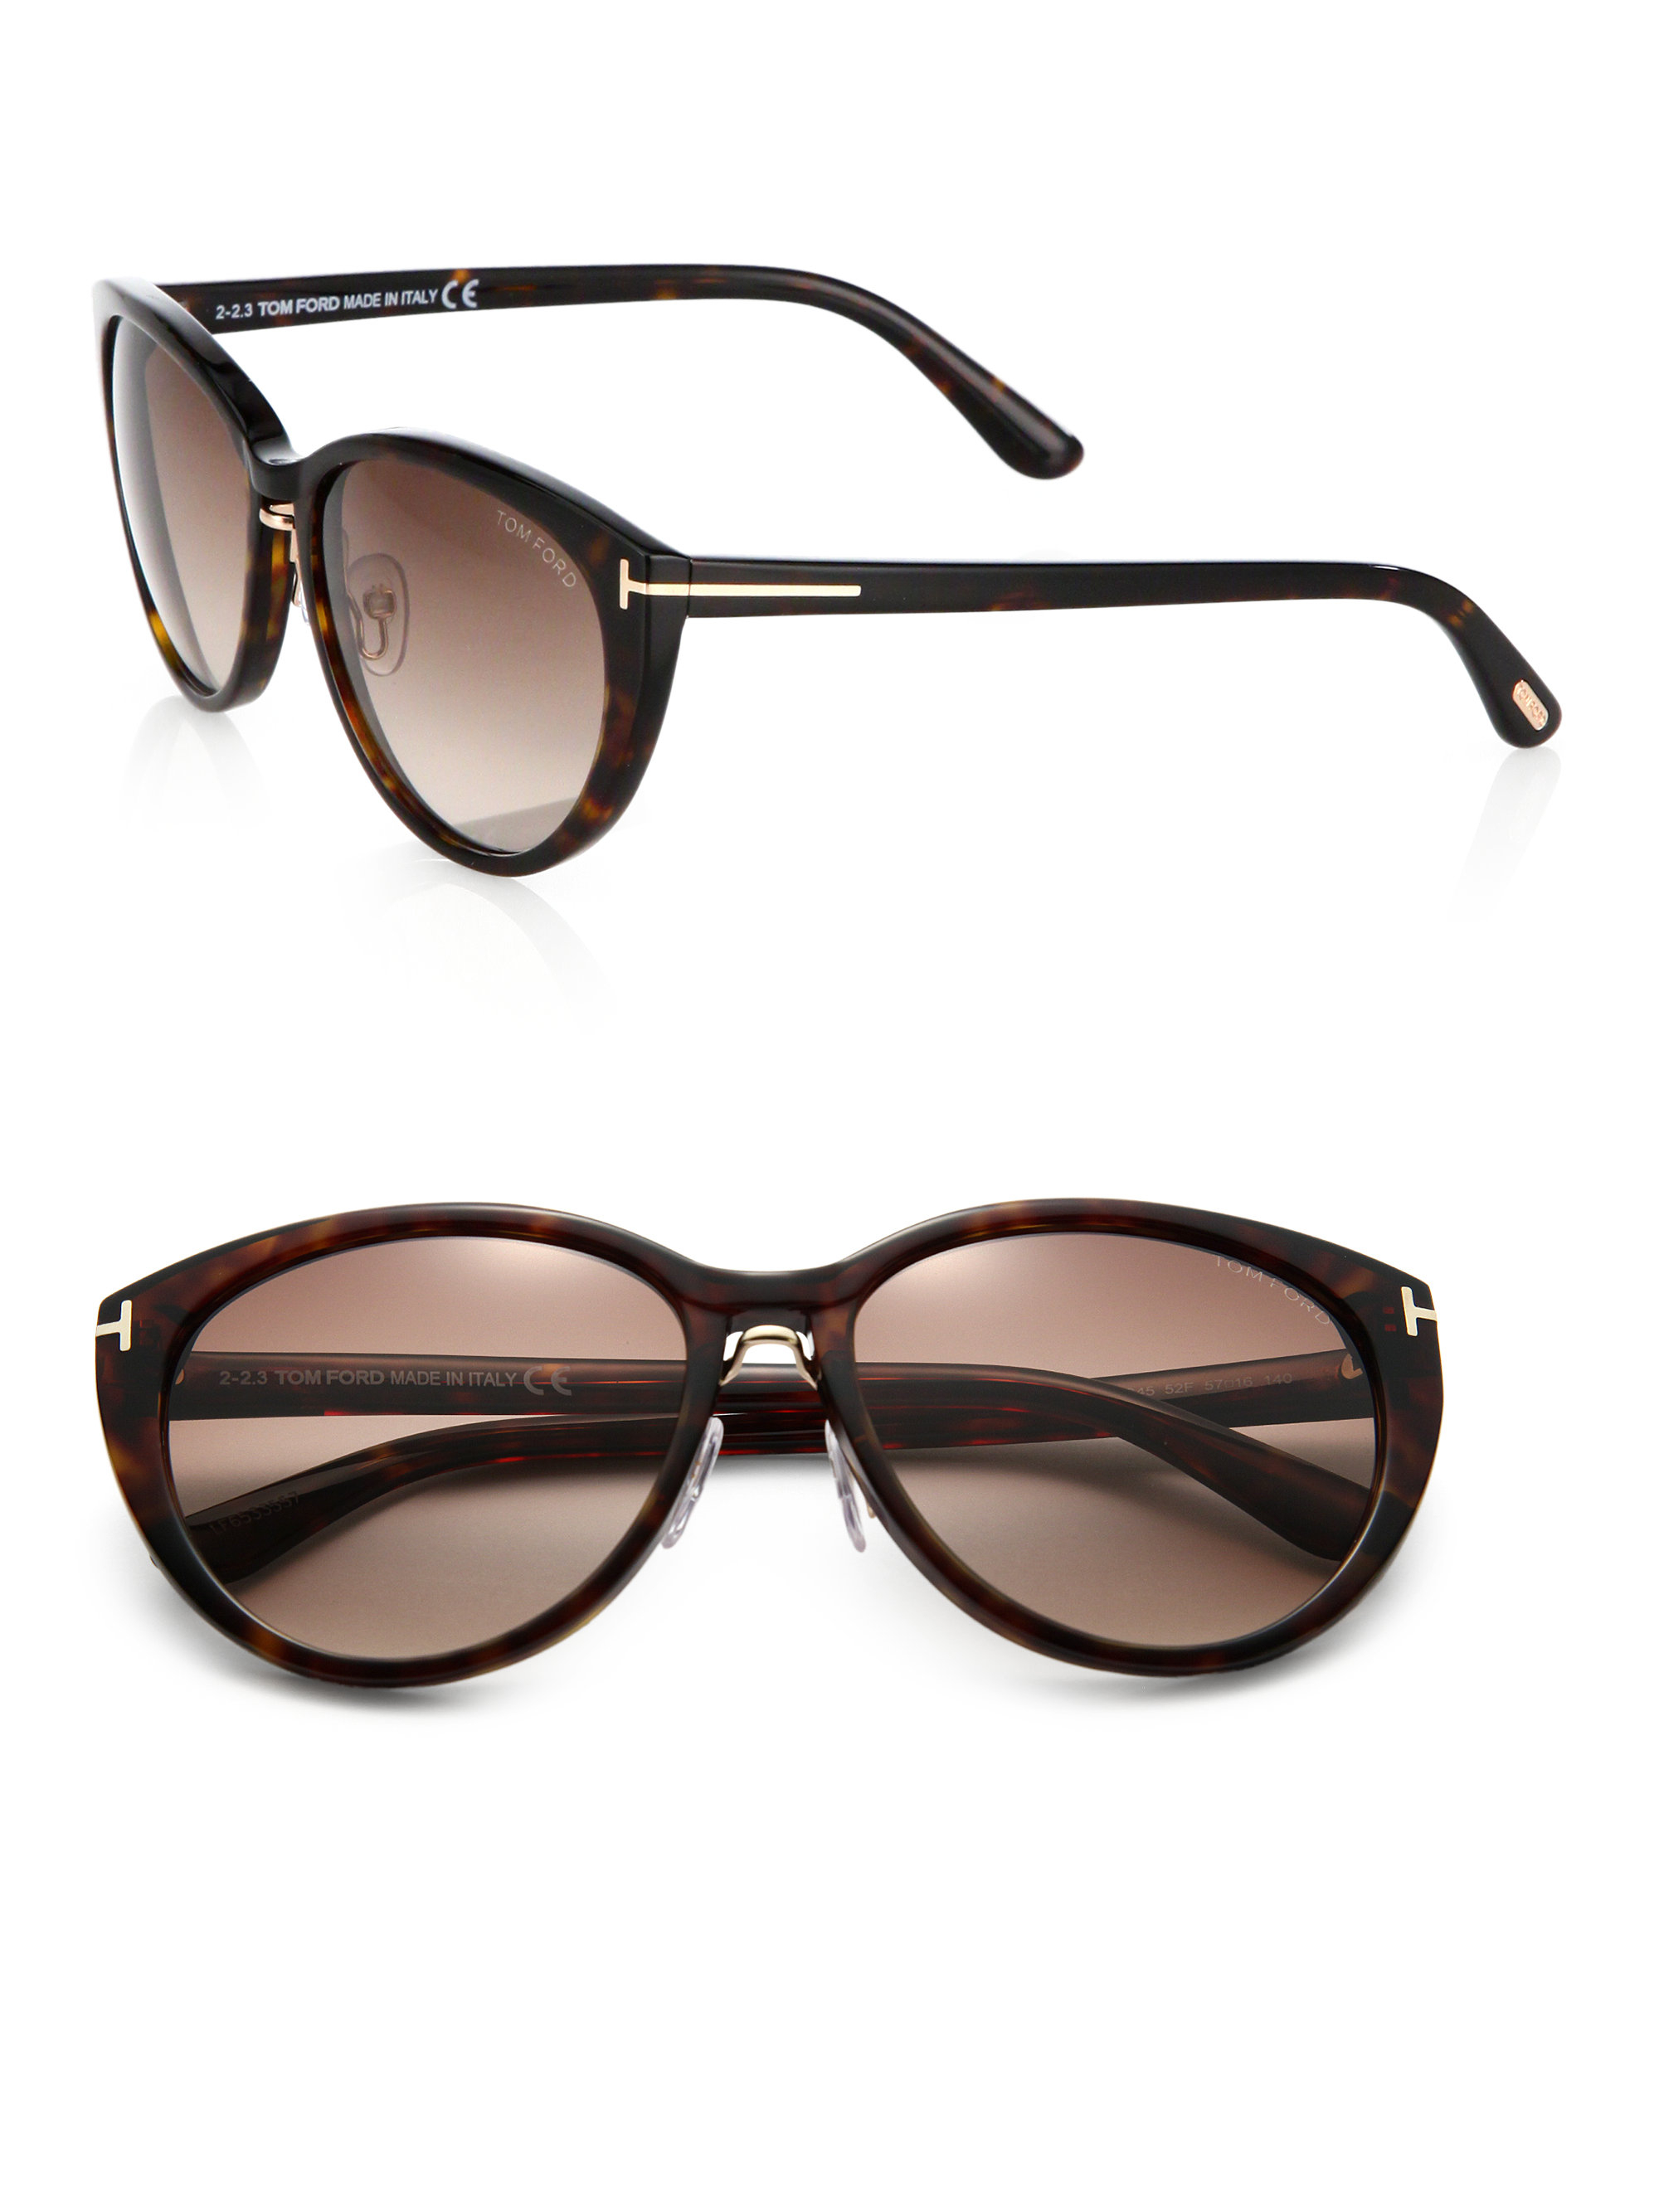 tom ford eyewear brown plastic cats eye sunglasses product 1 19802086. Cars Review. Best American Auto & Cars Review